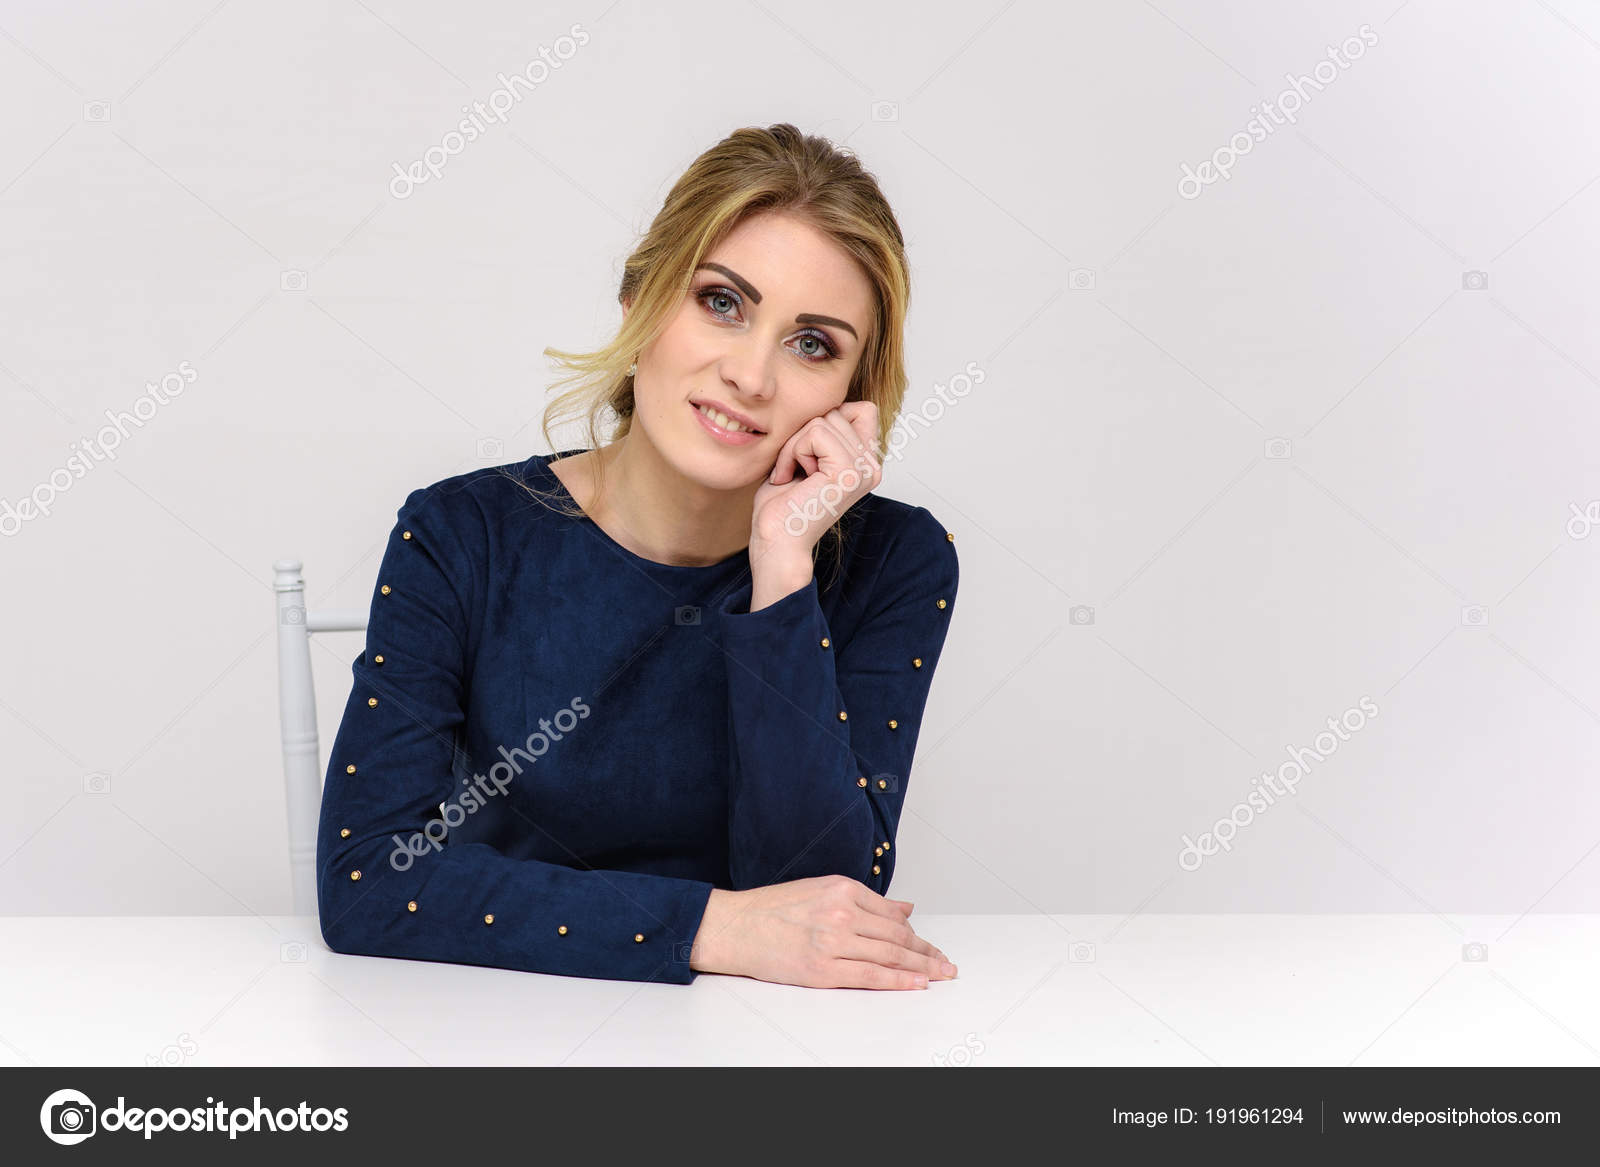 Beautiful Girl Sitting Table Different Poses Stock Photo Image By C Govorkov 191961294